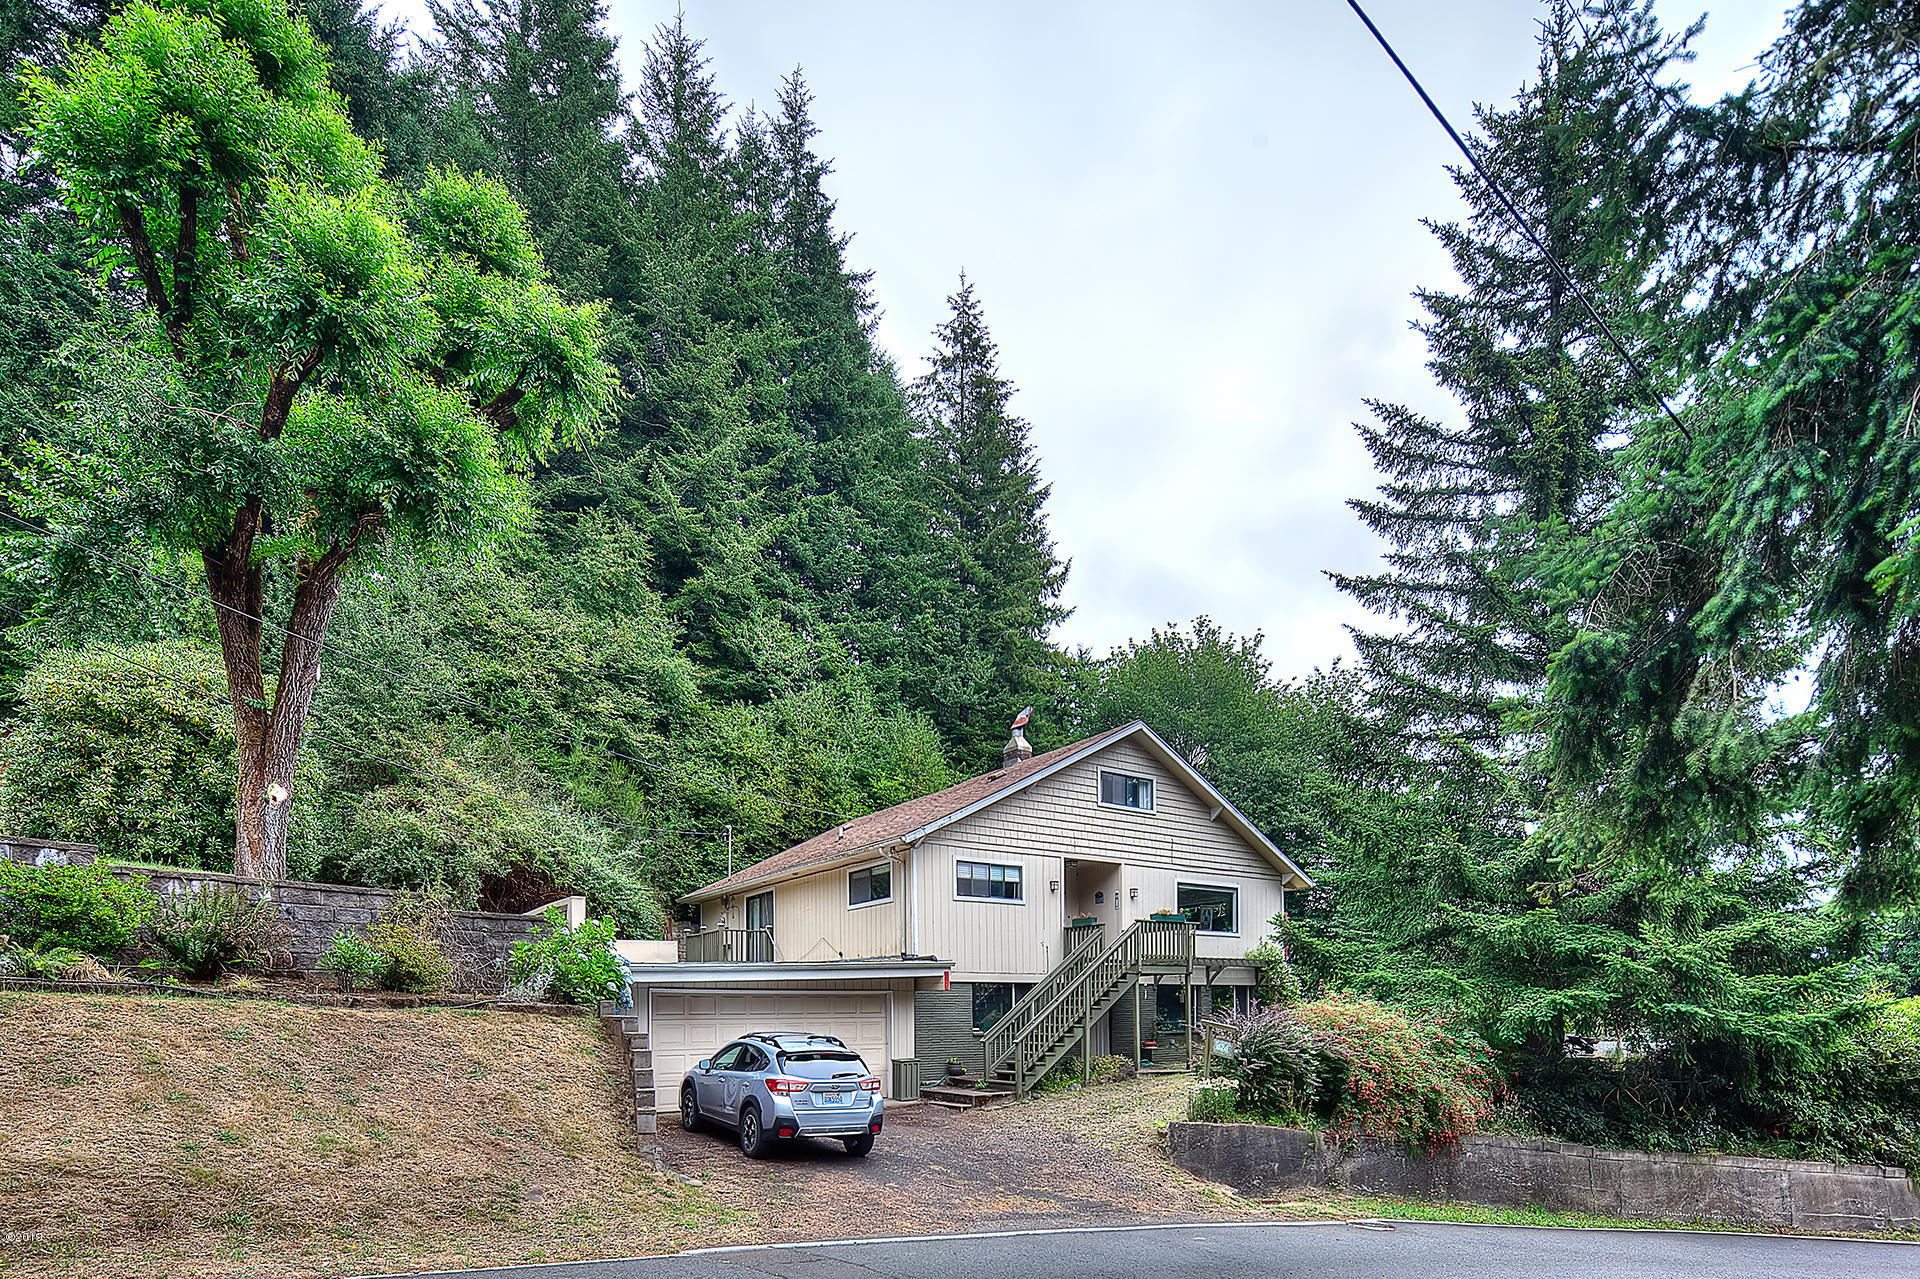 626 Nw Sunset Drive, Toledo, OR 97391 - 626 NW Sunset